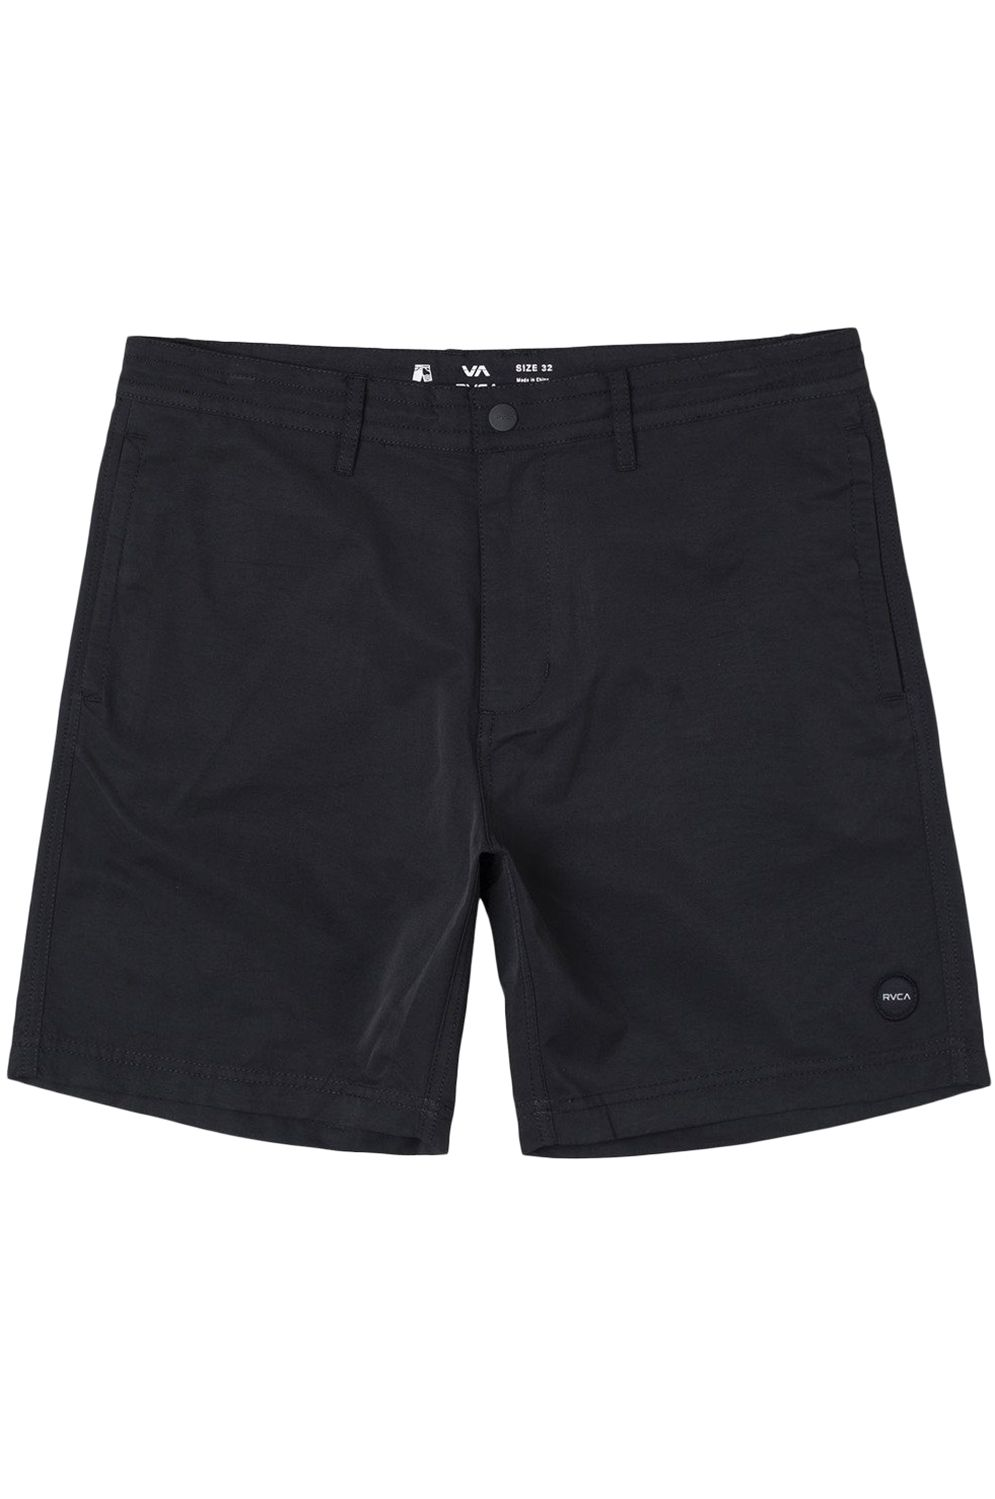 RVCA HydroWalkShorts CLIFFS Black